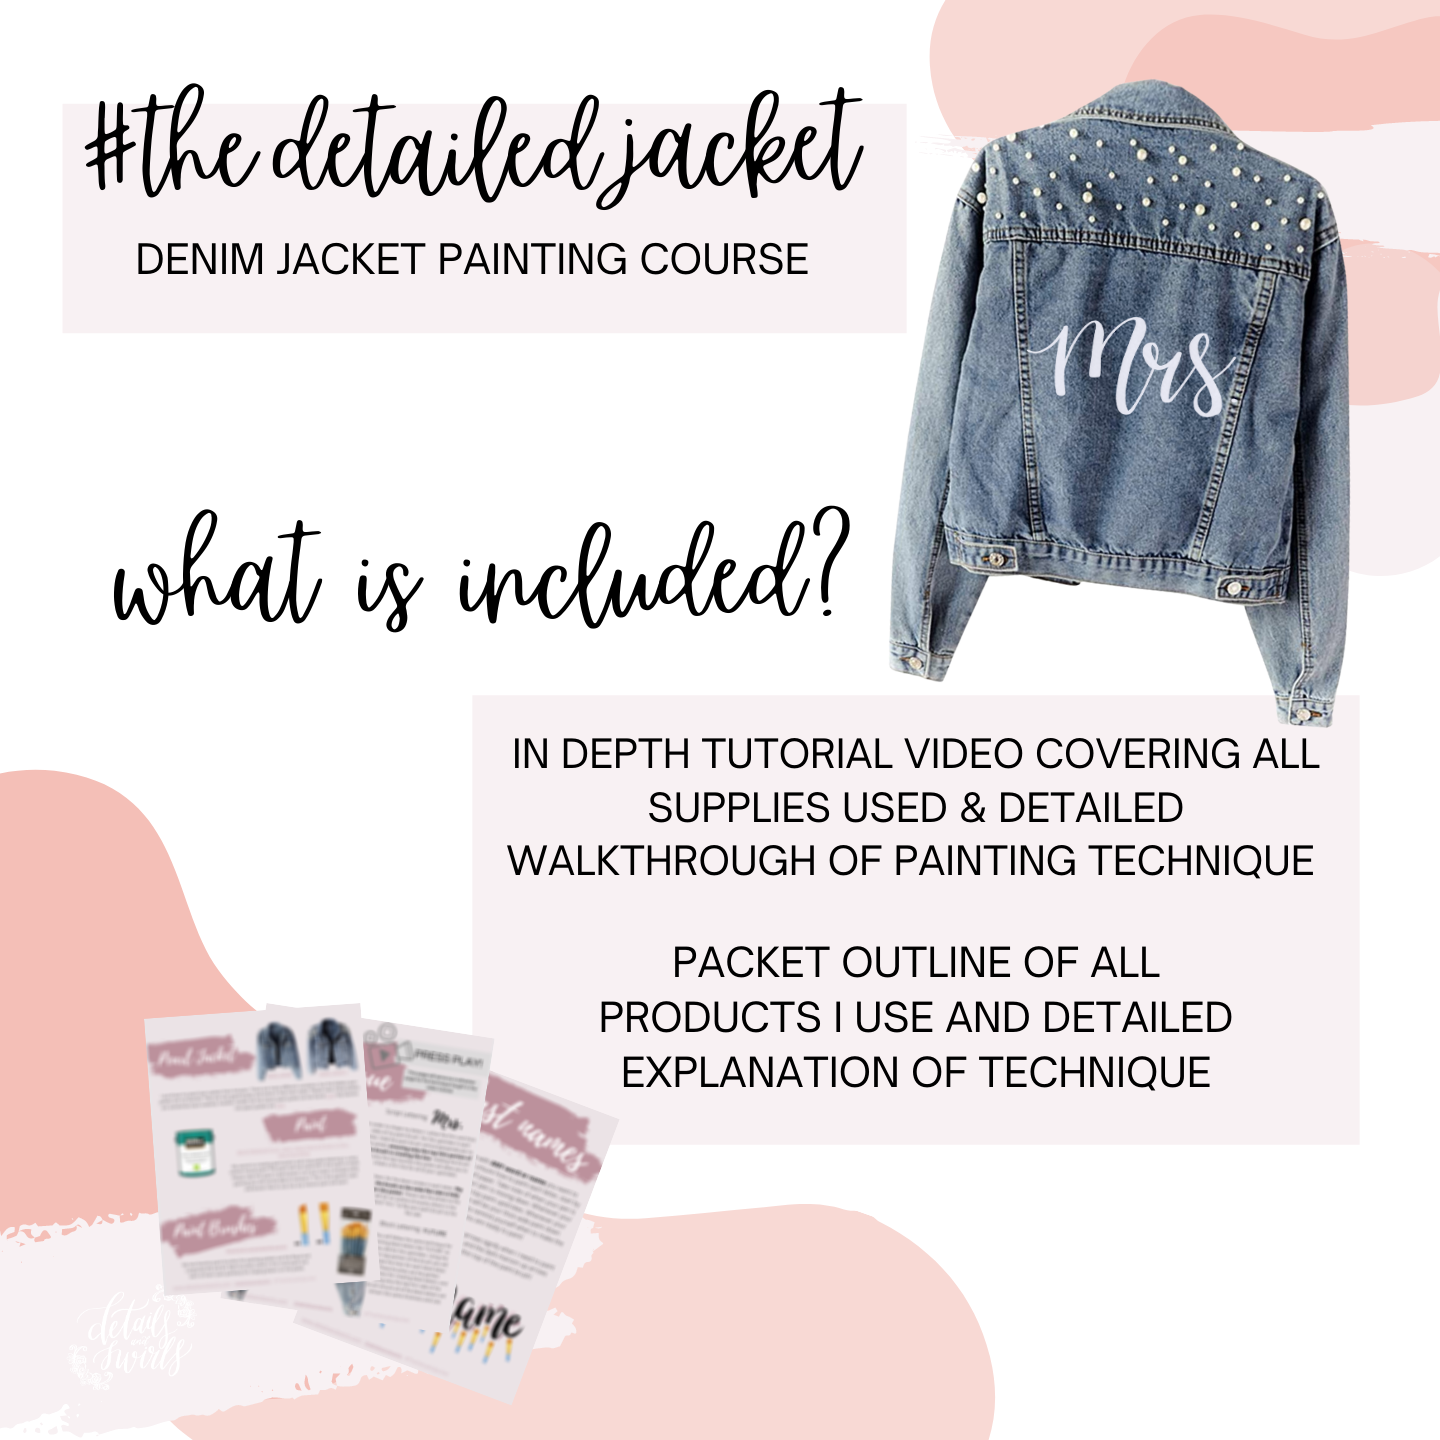 #TheDetailedJacket - Jacket Painting Course